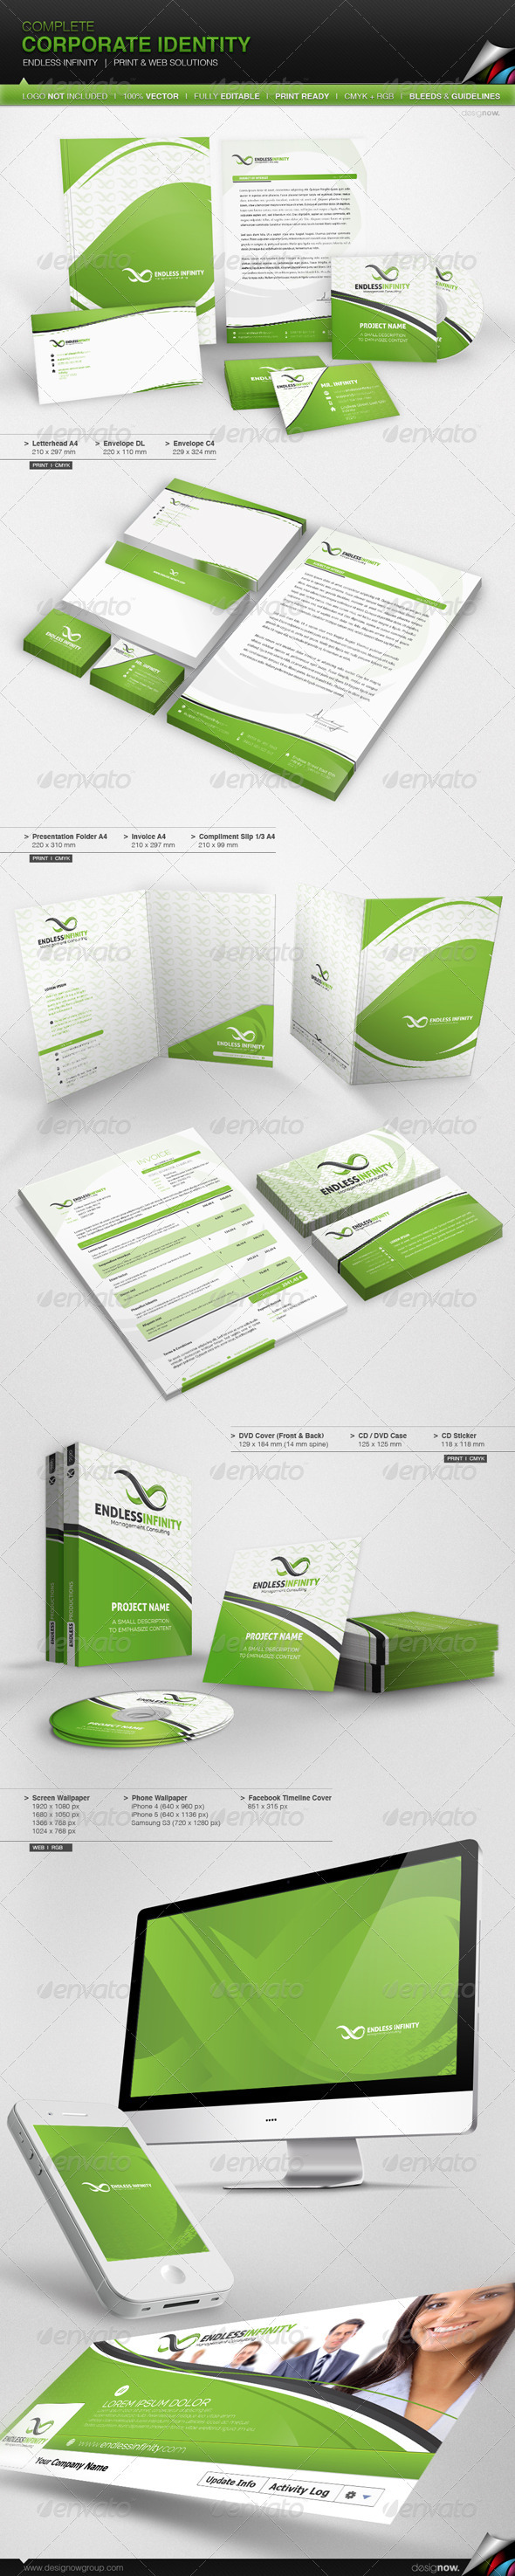 GraphicRiver Corporate Identity Endless Infinity 3742615